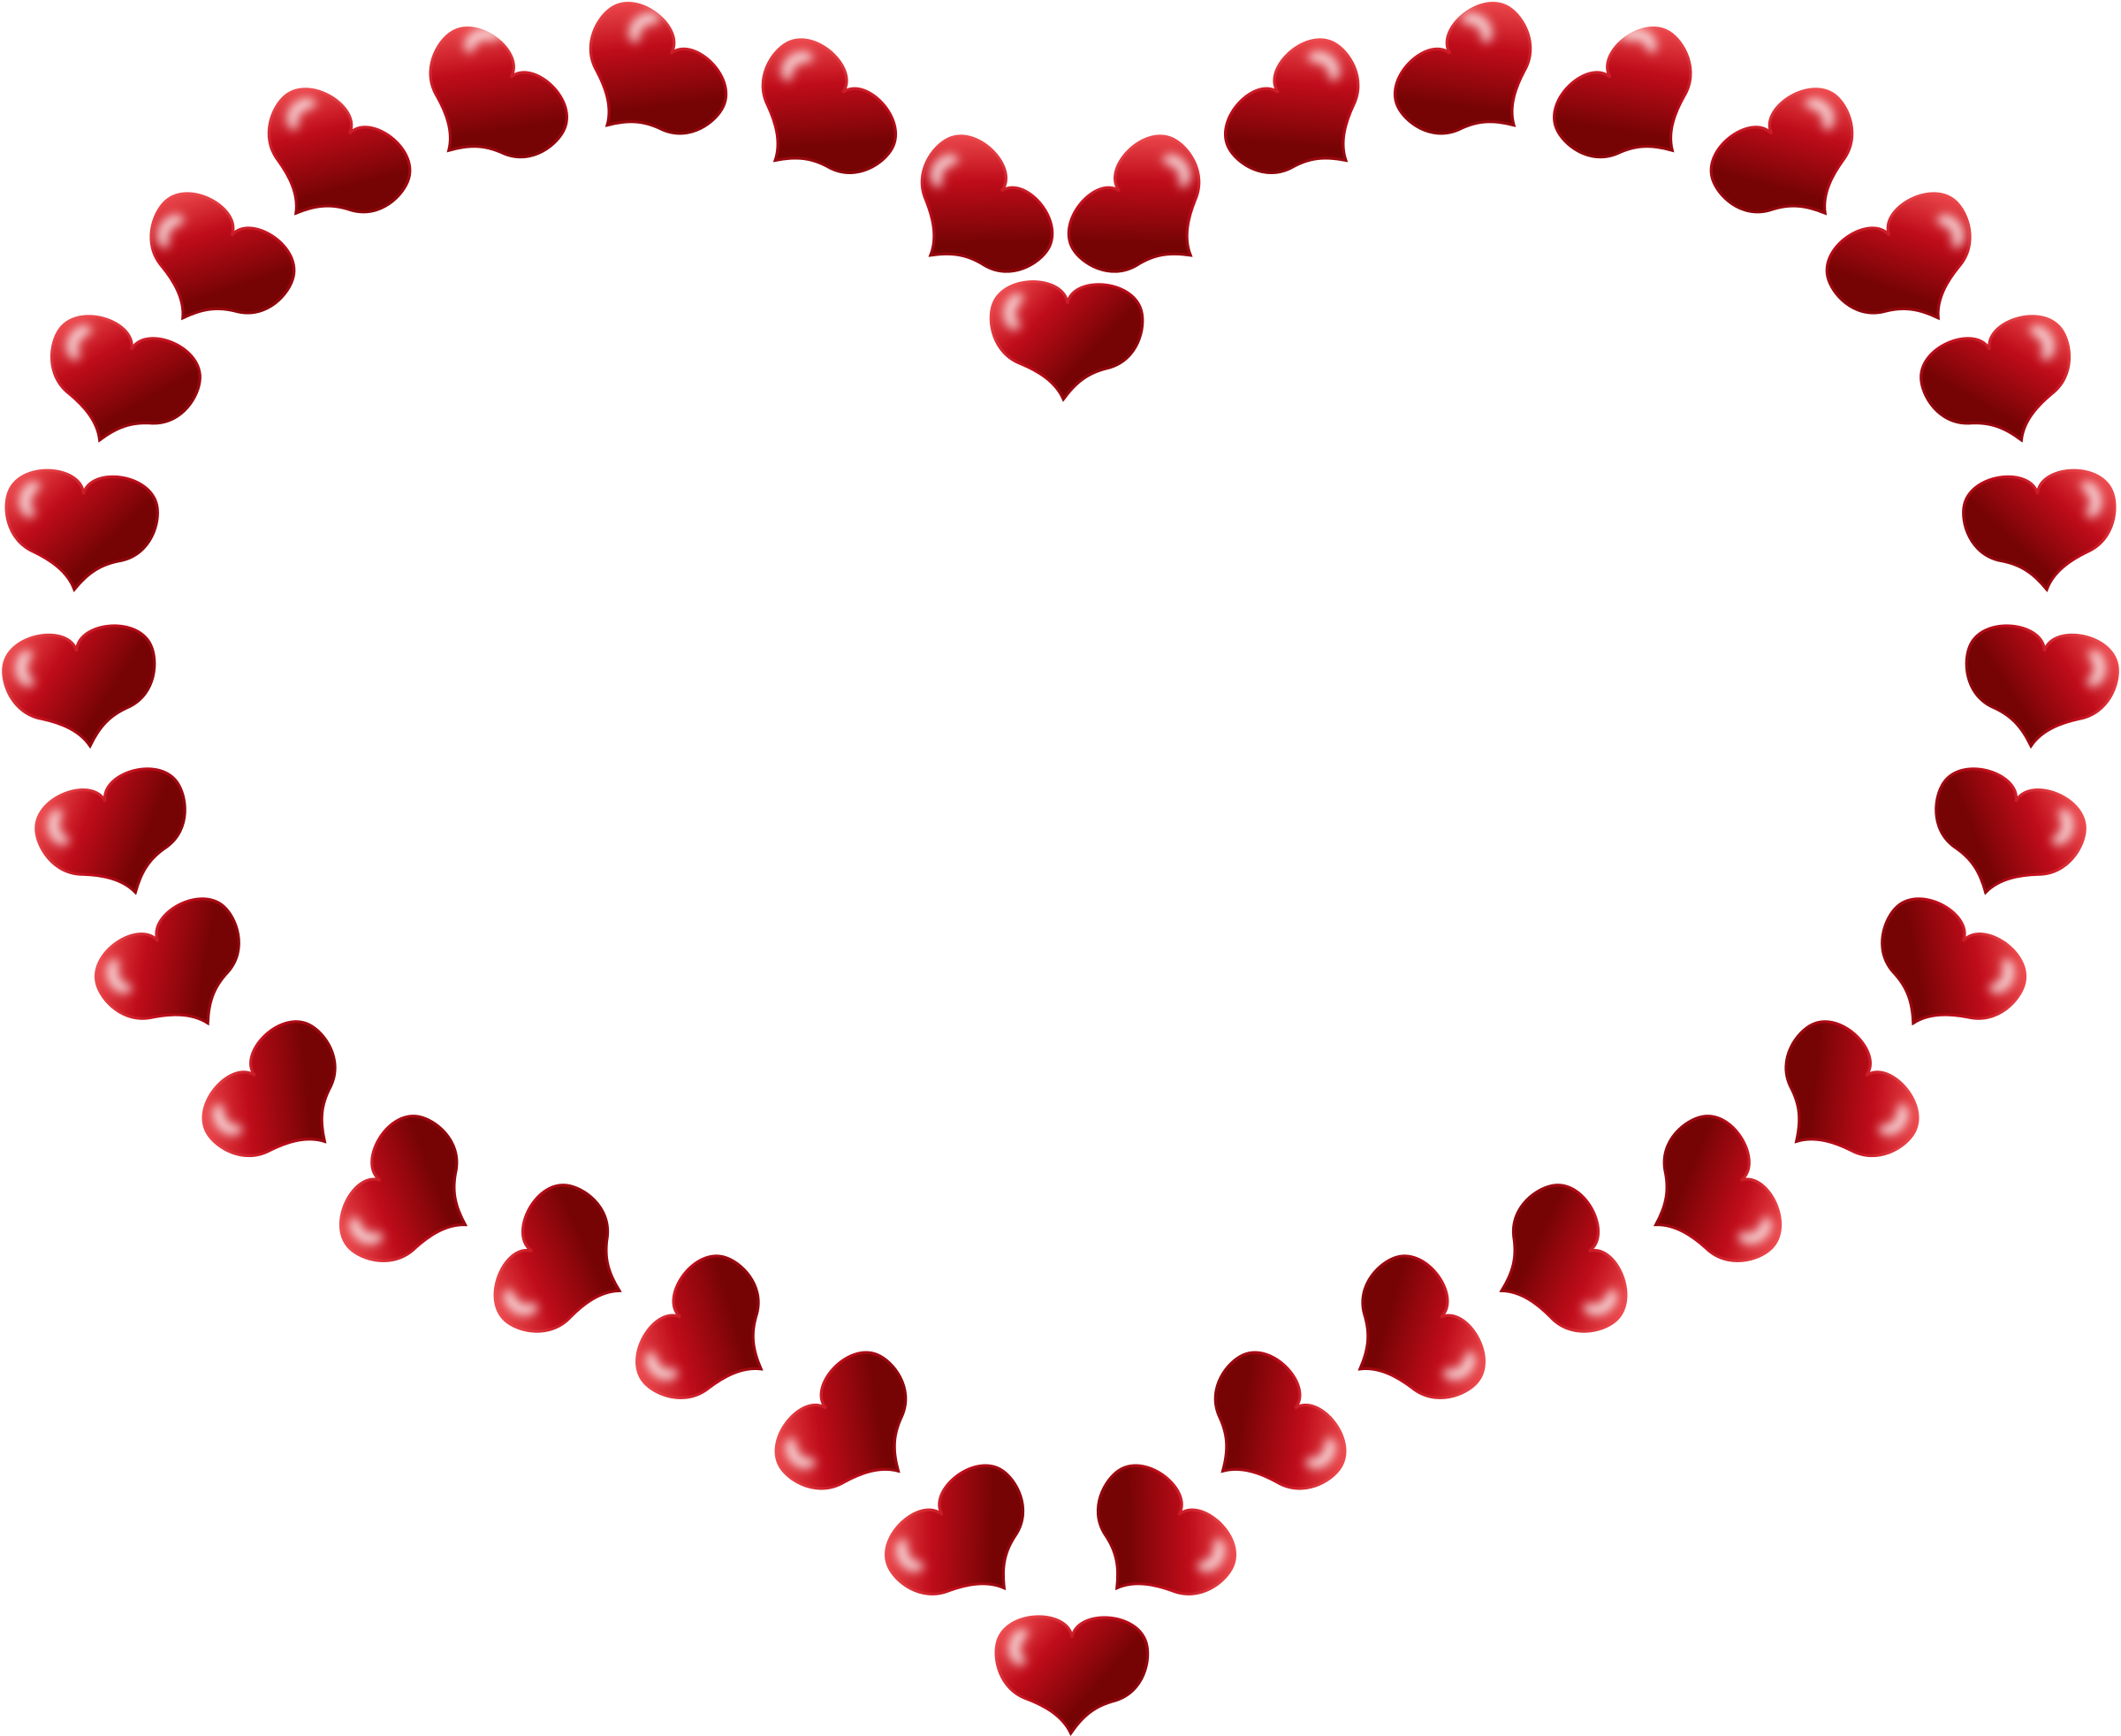 big heart clipart at getdrawings com free for personal use big